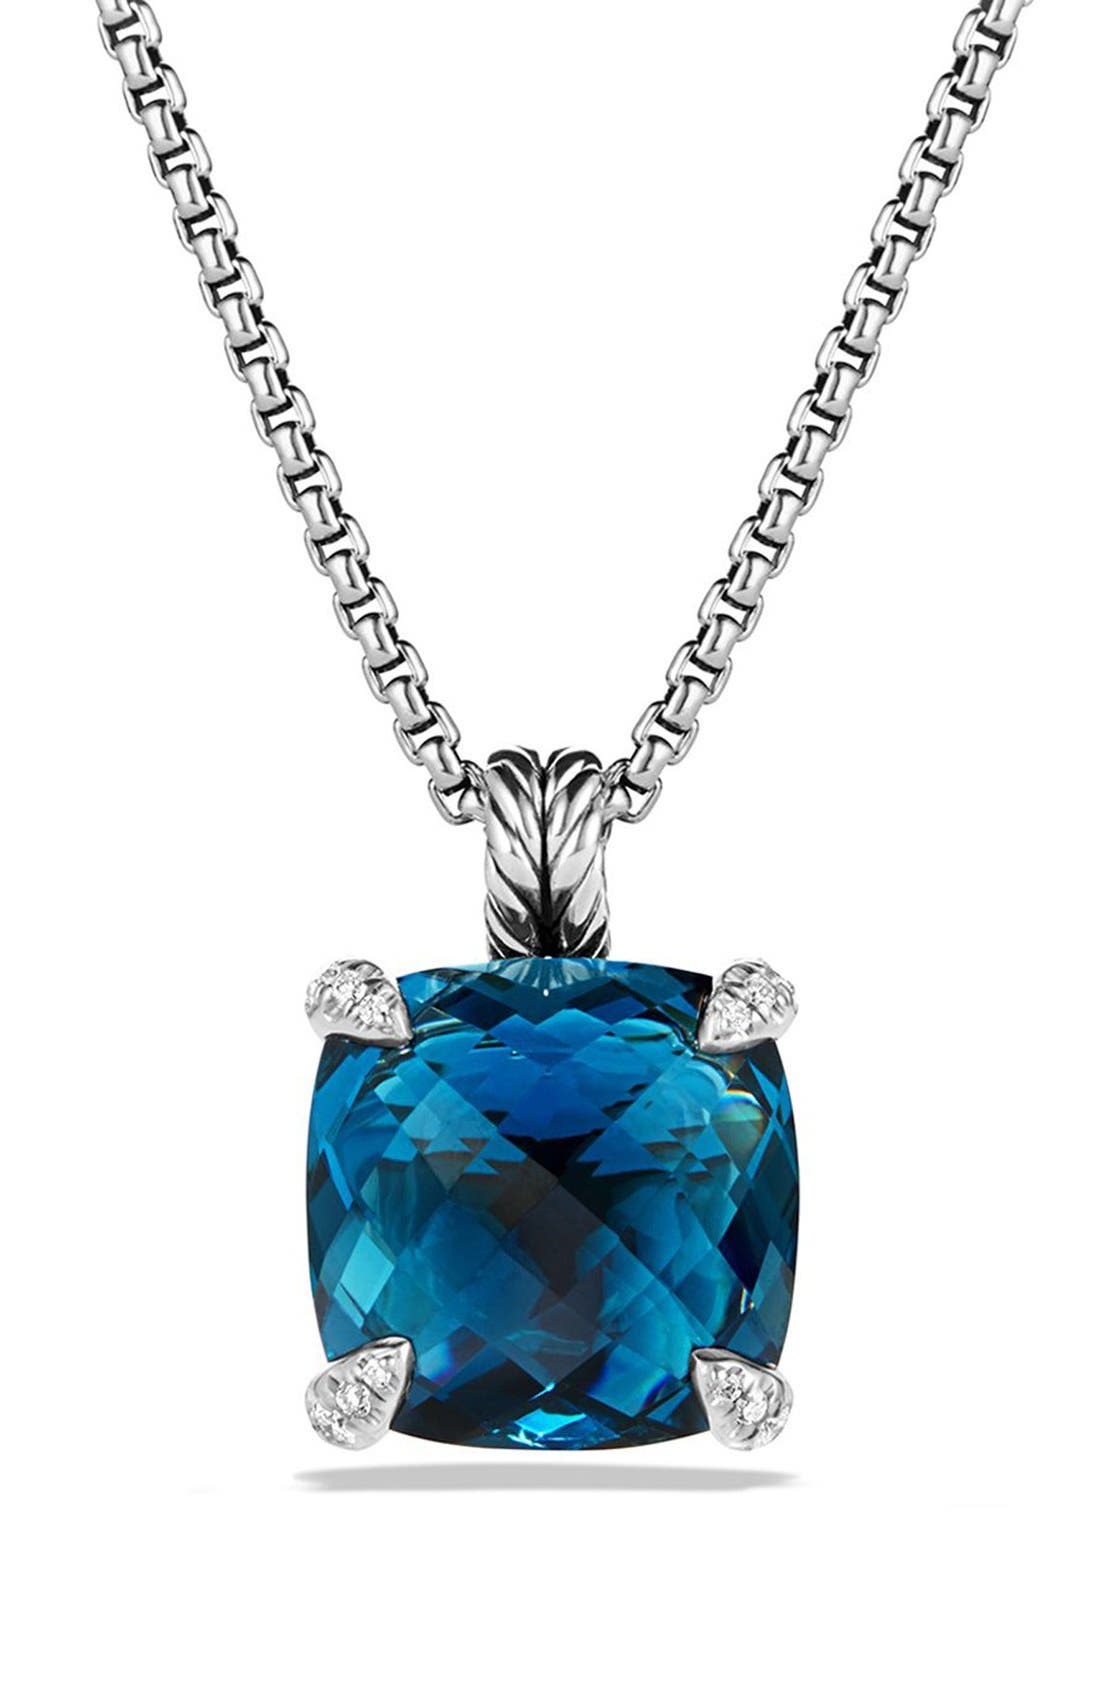 'Châtelaine' Pendant Necklace with Semiprecious Stone and Diamonds,                         Main,                         color, SILVER/ HAMPTON BLUE TOPAZ